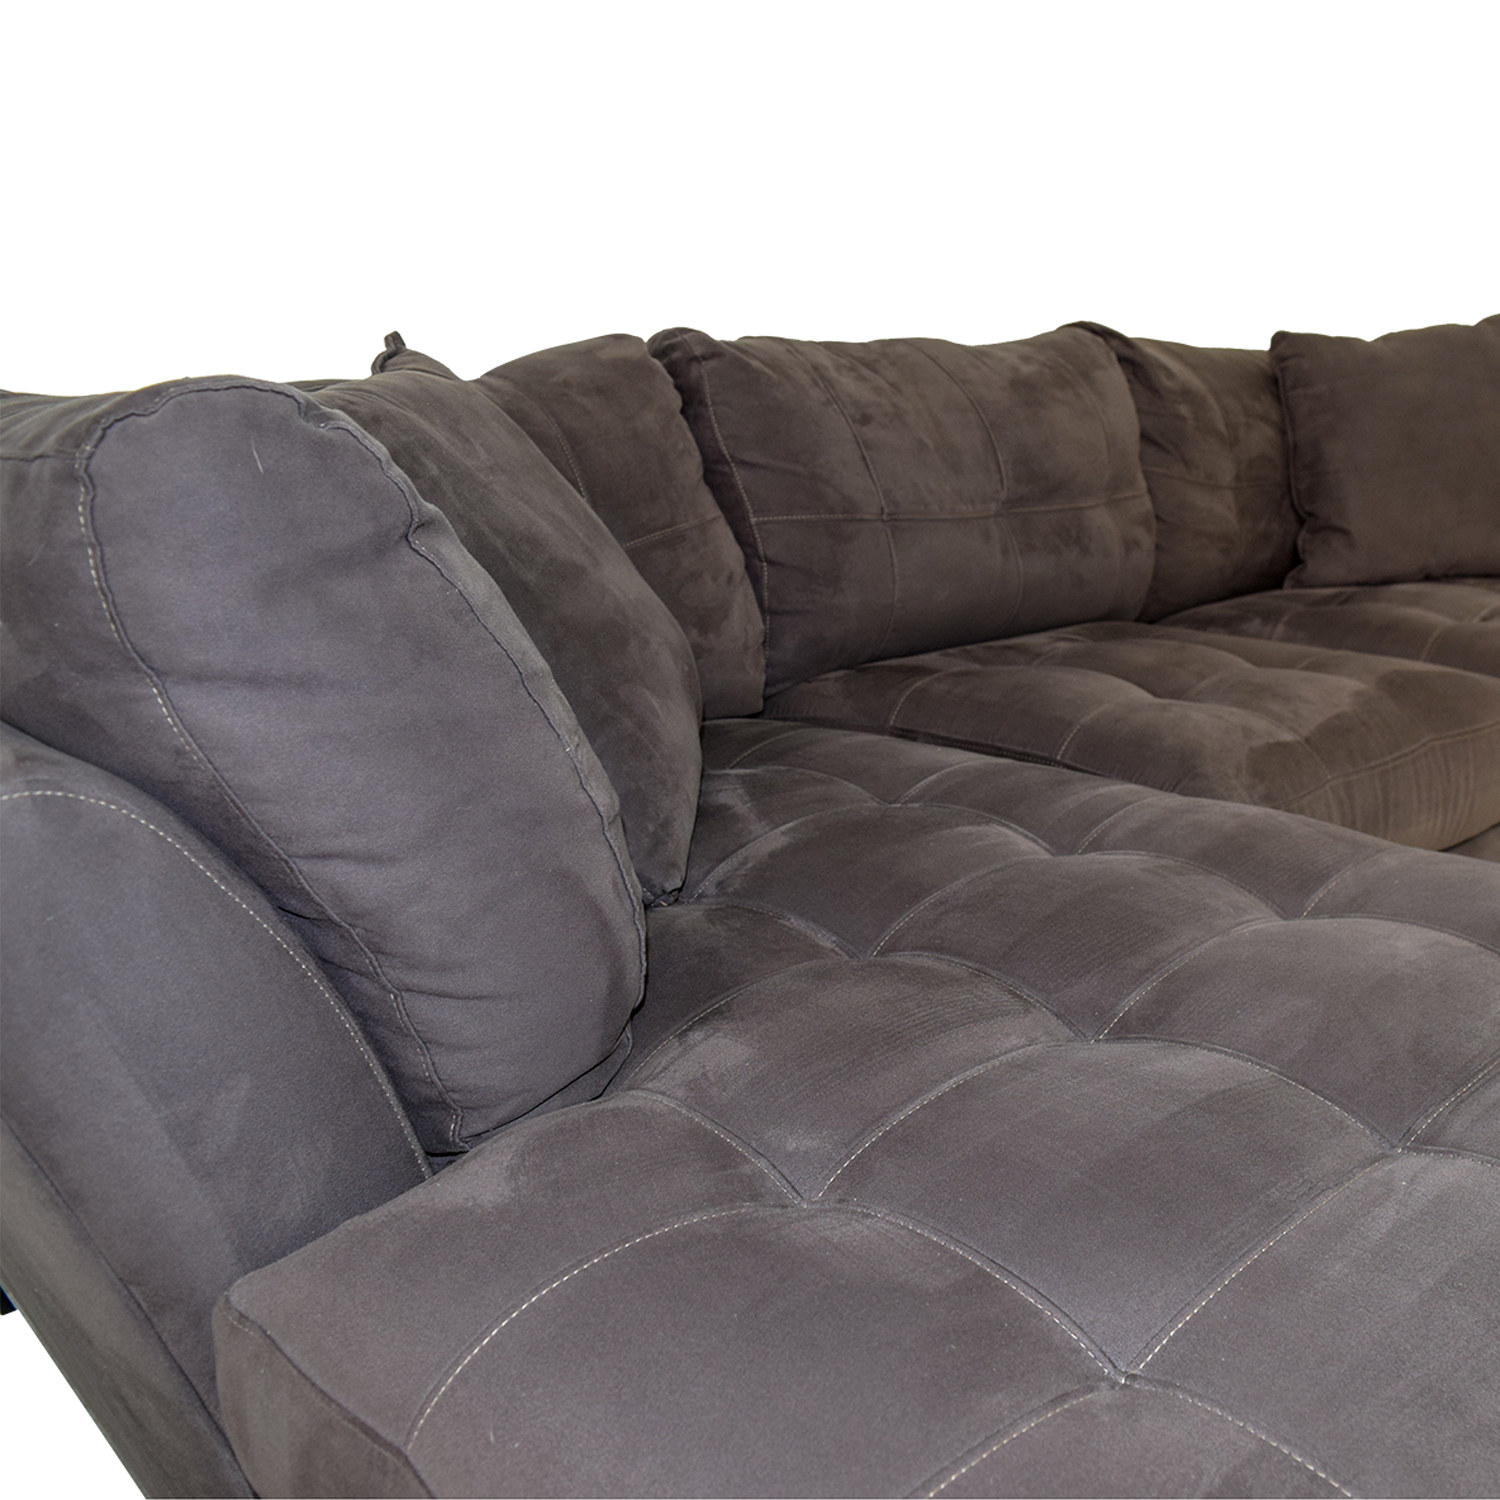 Pleasing 64 Off Raymour Flanigan Raymour Flanigan Cindy Crawford Home Metropolis 2 Piece Microfiber Sectional Sofas Pdpeps Interior Chair Design Pdpepsorg